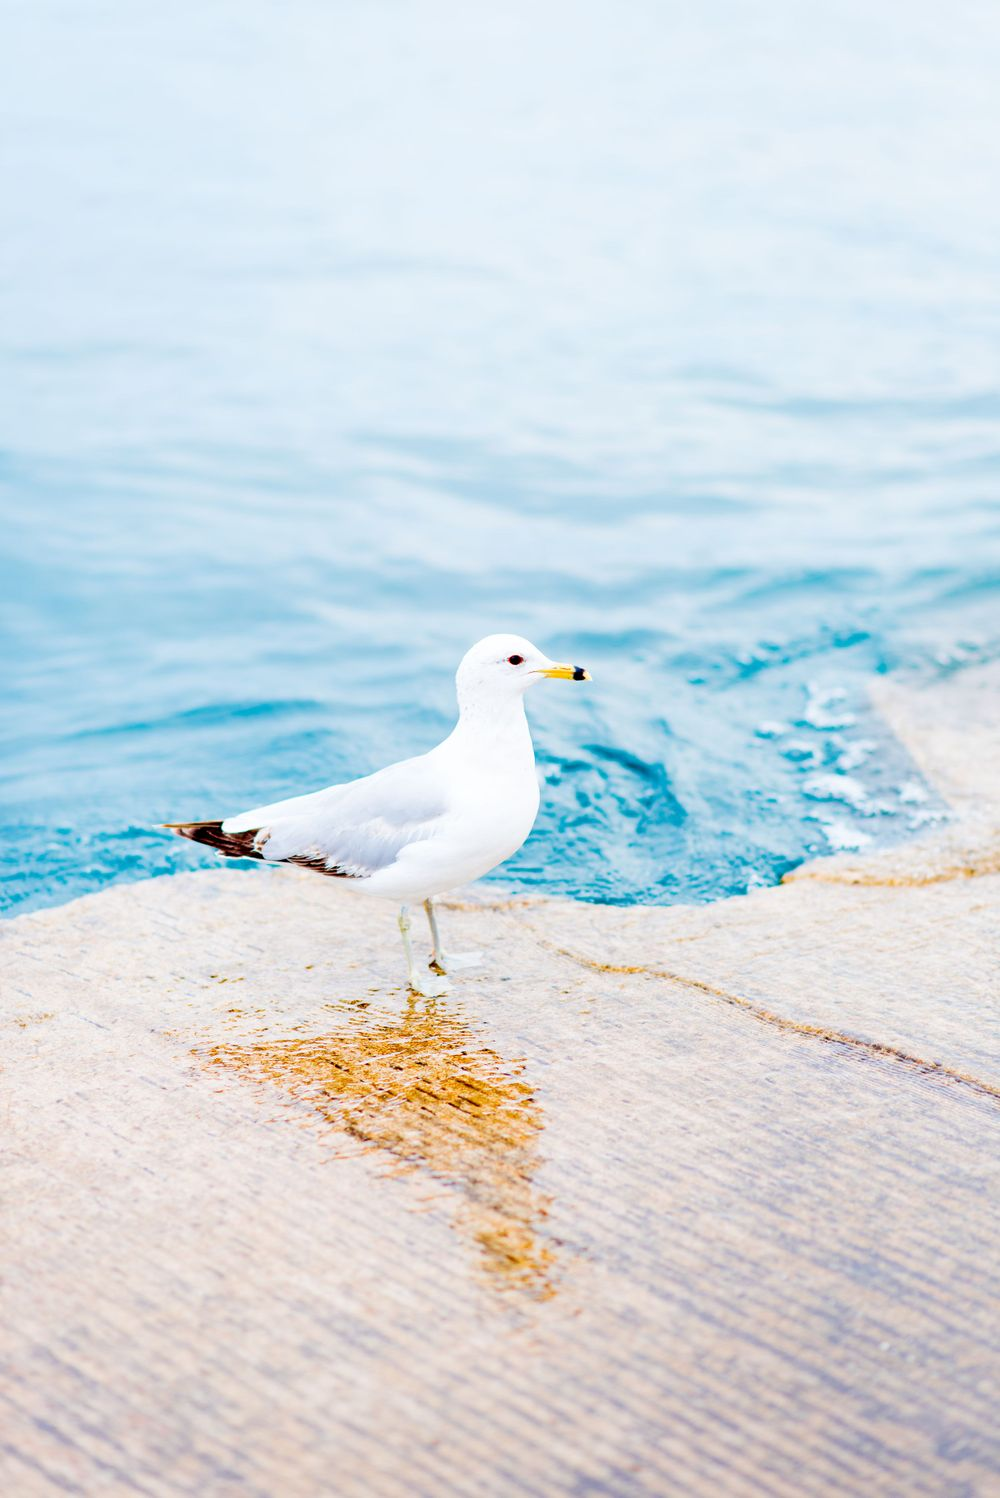 white seagull at the edge of Lake Michigan's blue water